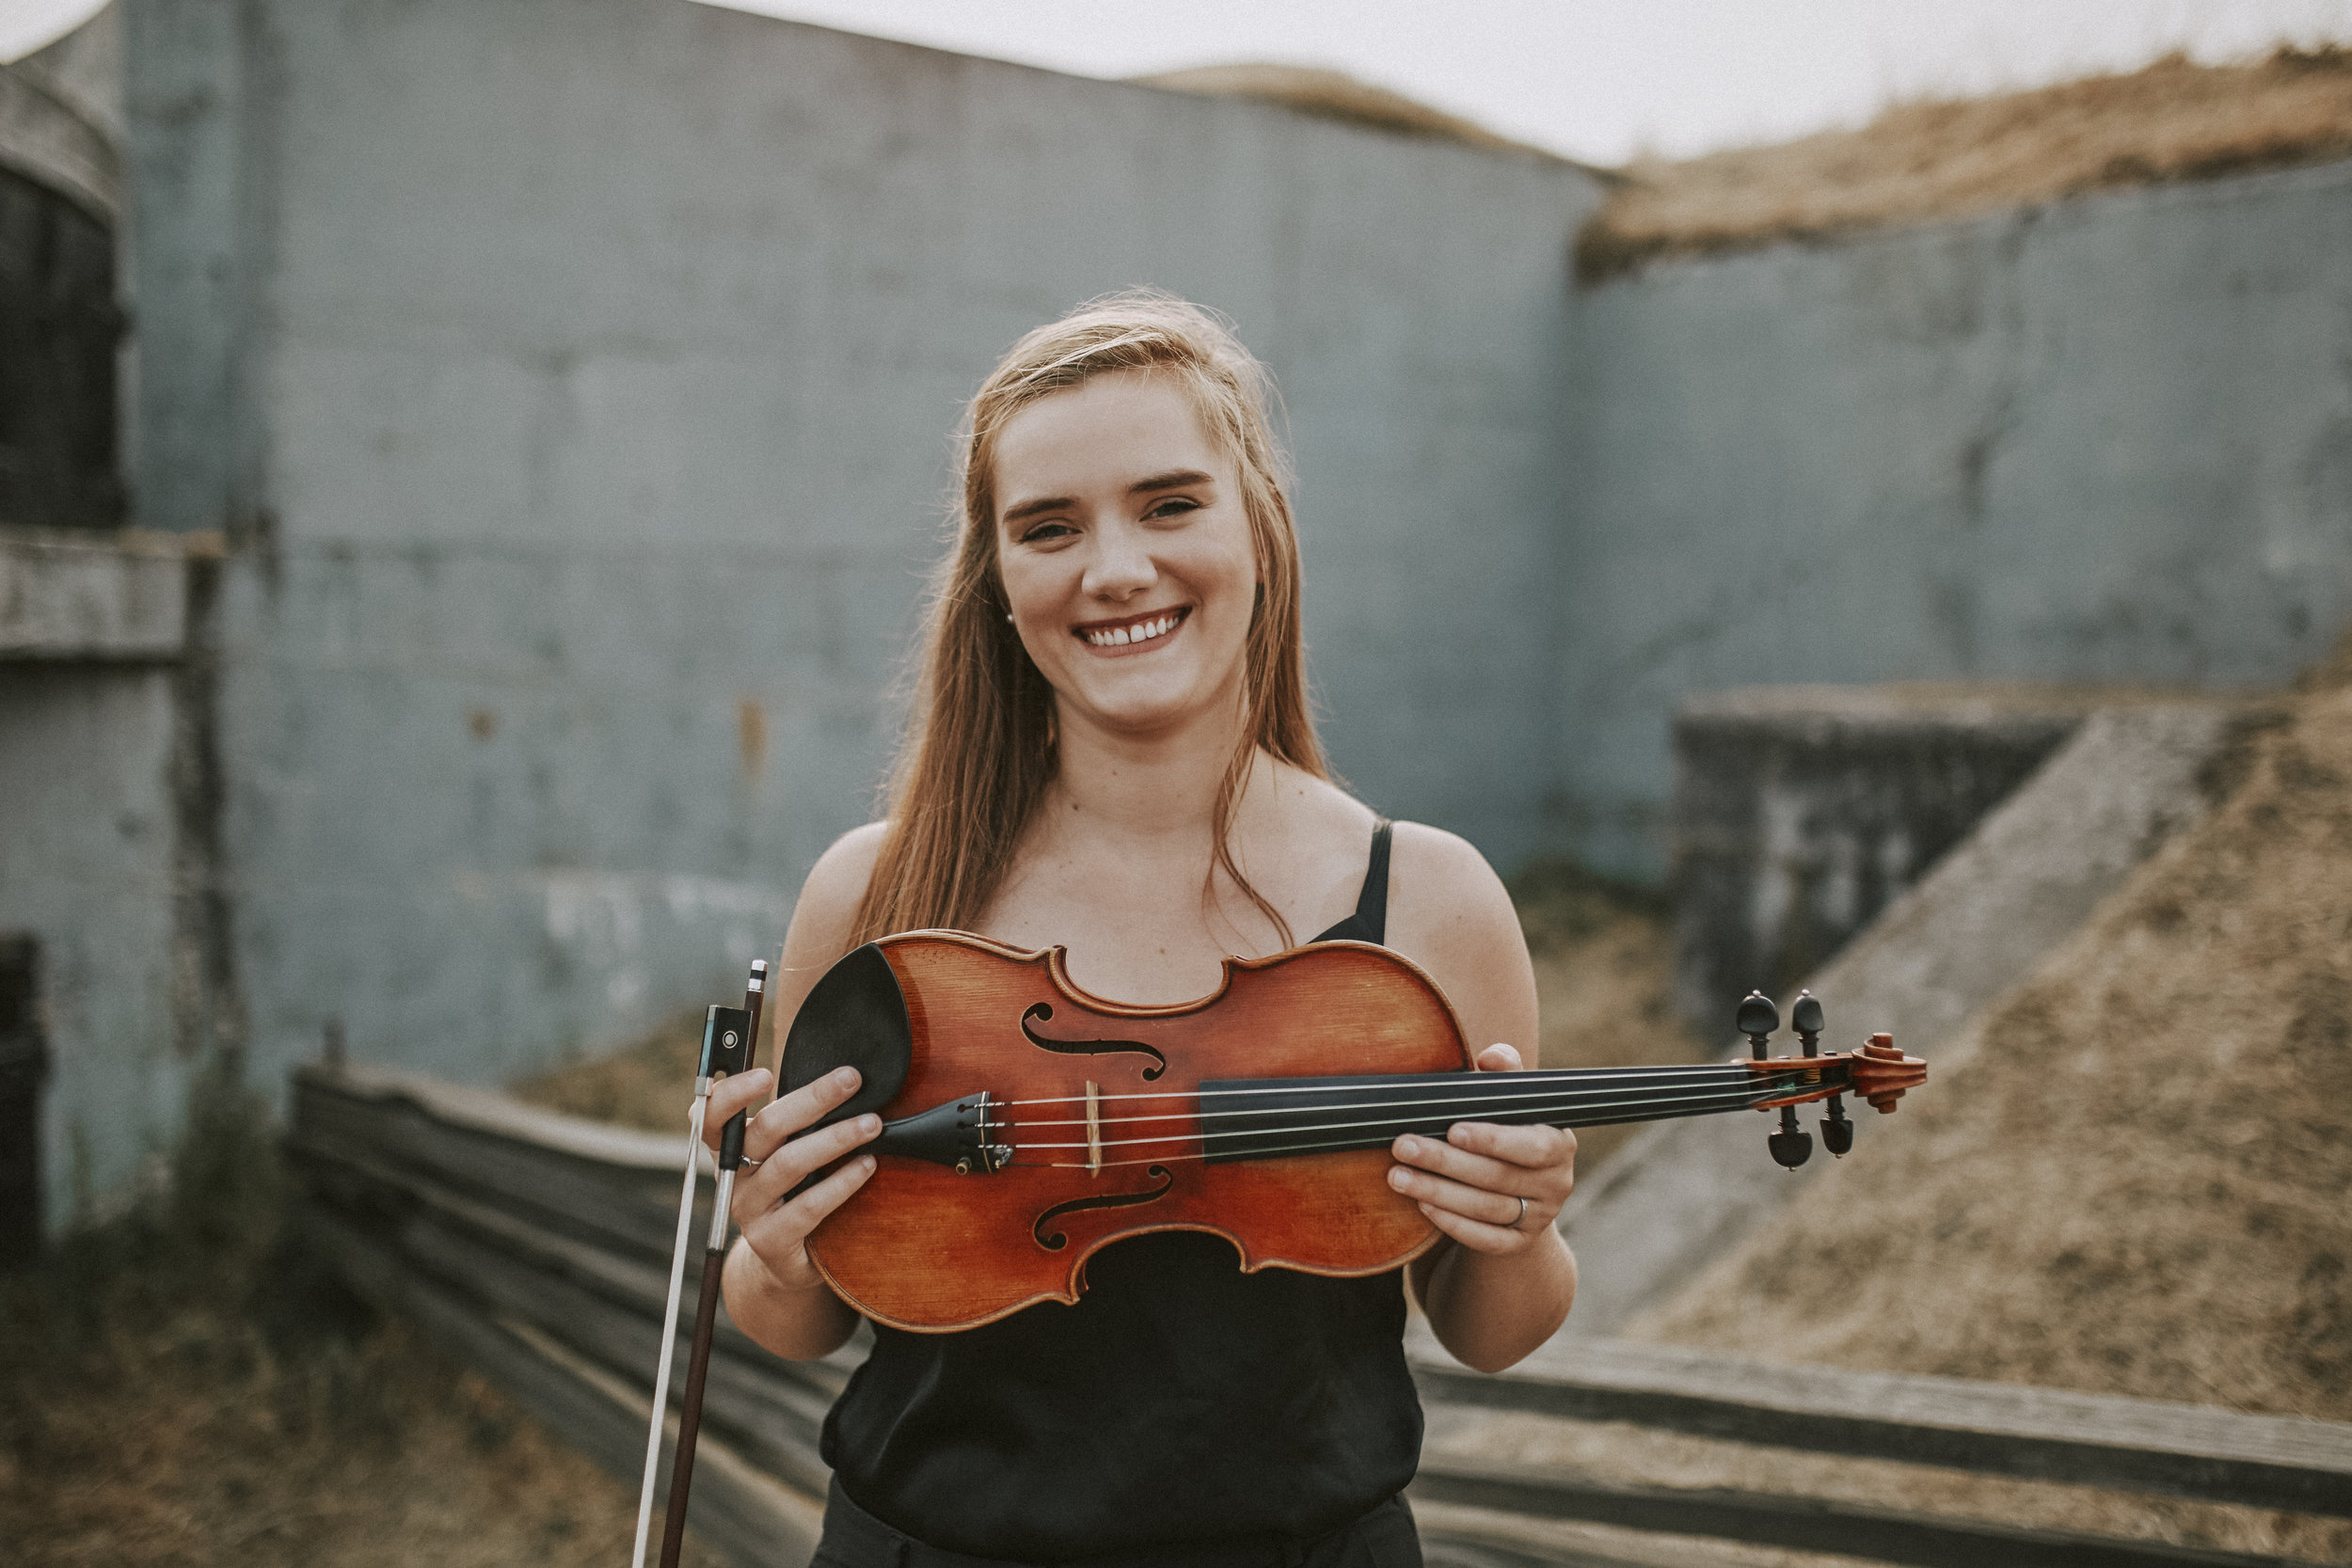 Kathryn wiebe - modern + baroque violin, educator, arranger